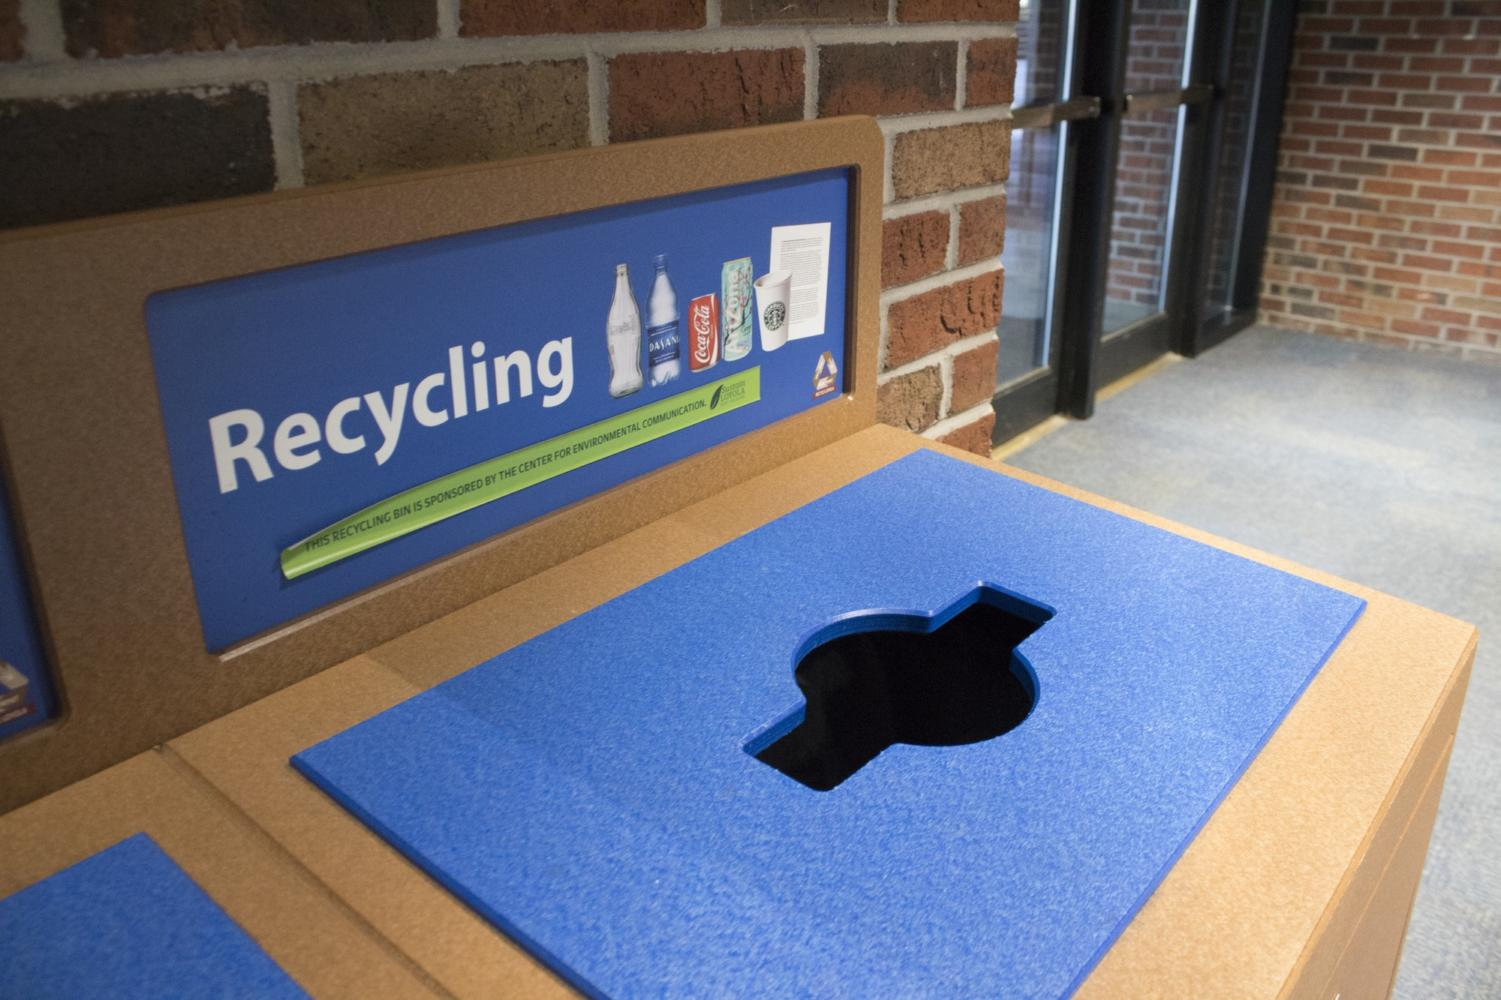 Loyola awarded Coca-Cola Public Space Recycling Grant